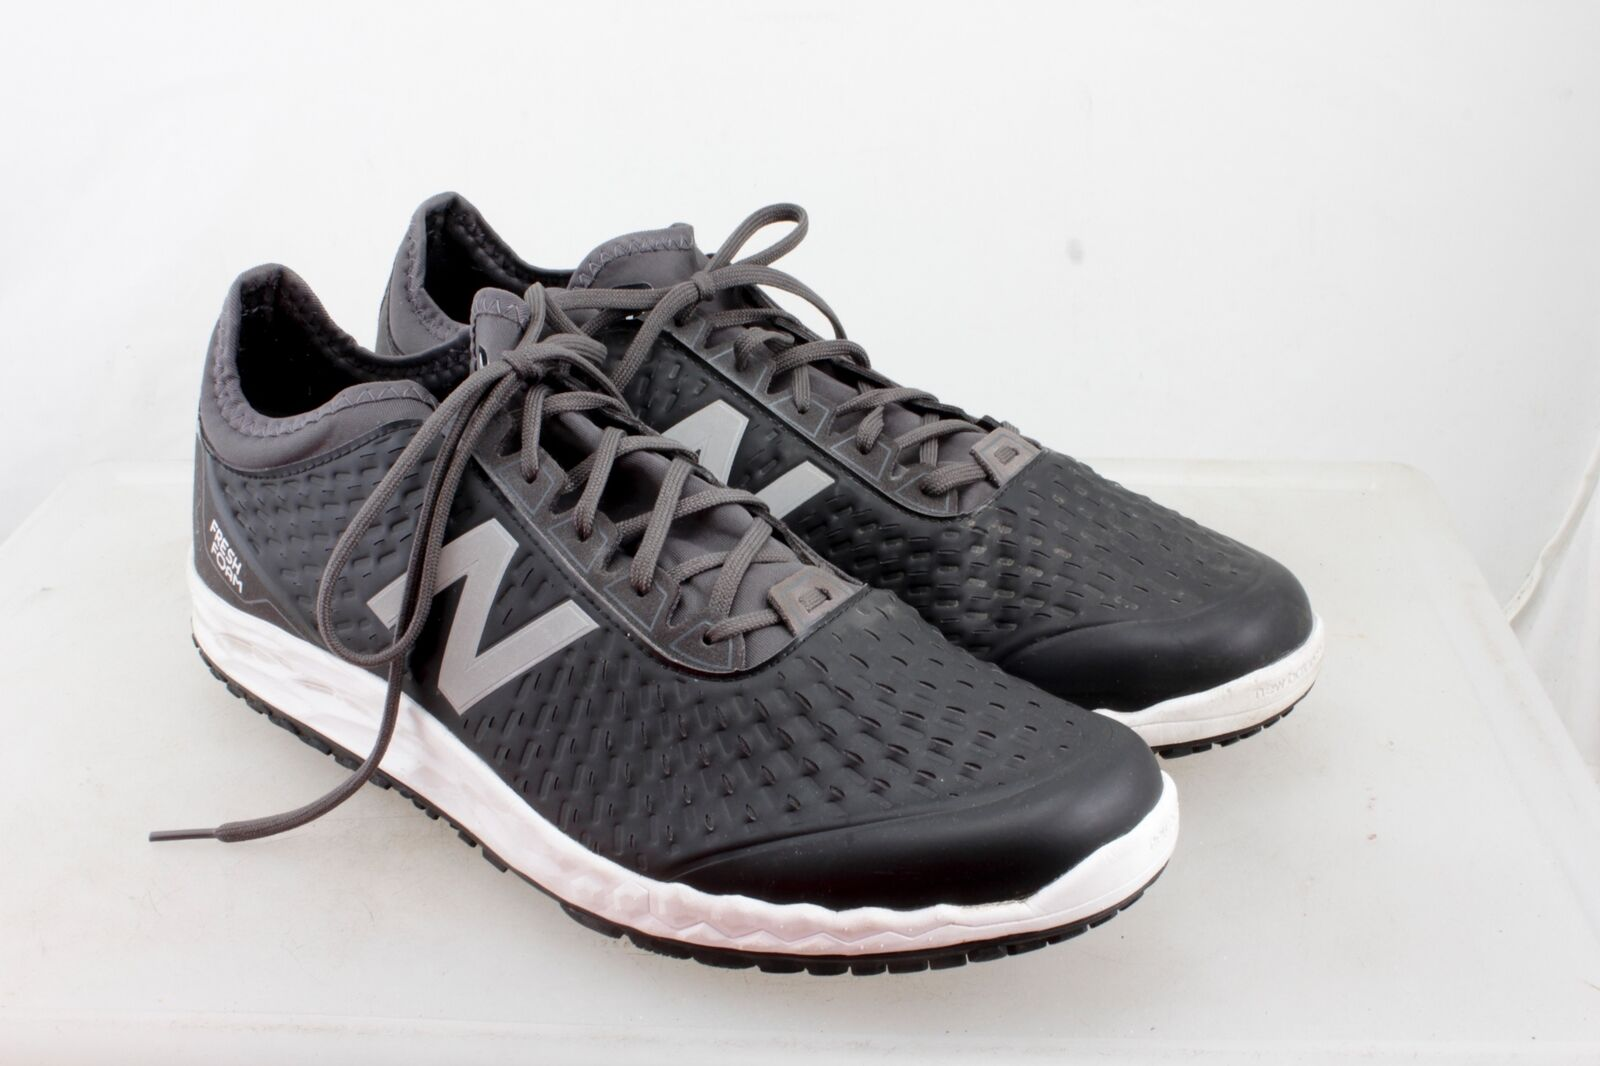 New Balance Men's MXVADO  Training shoes Black Men's  14 D US 49 EU